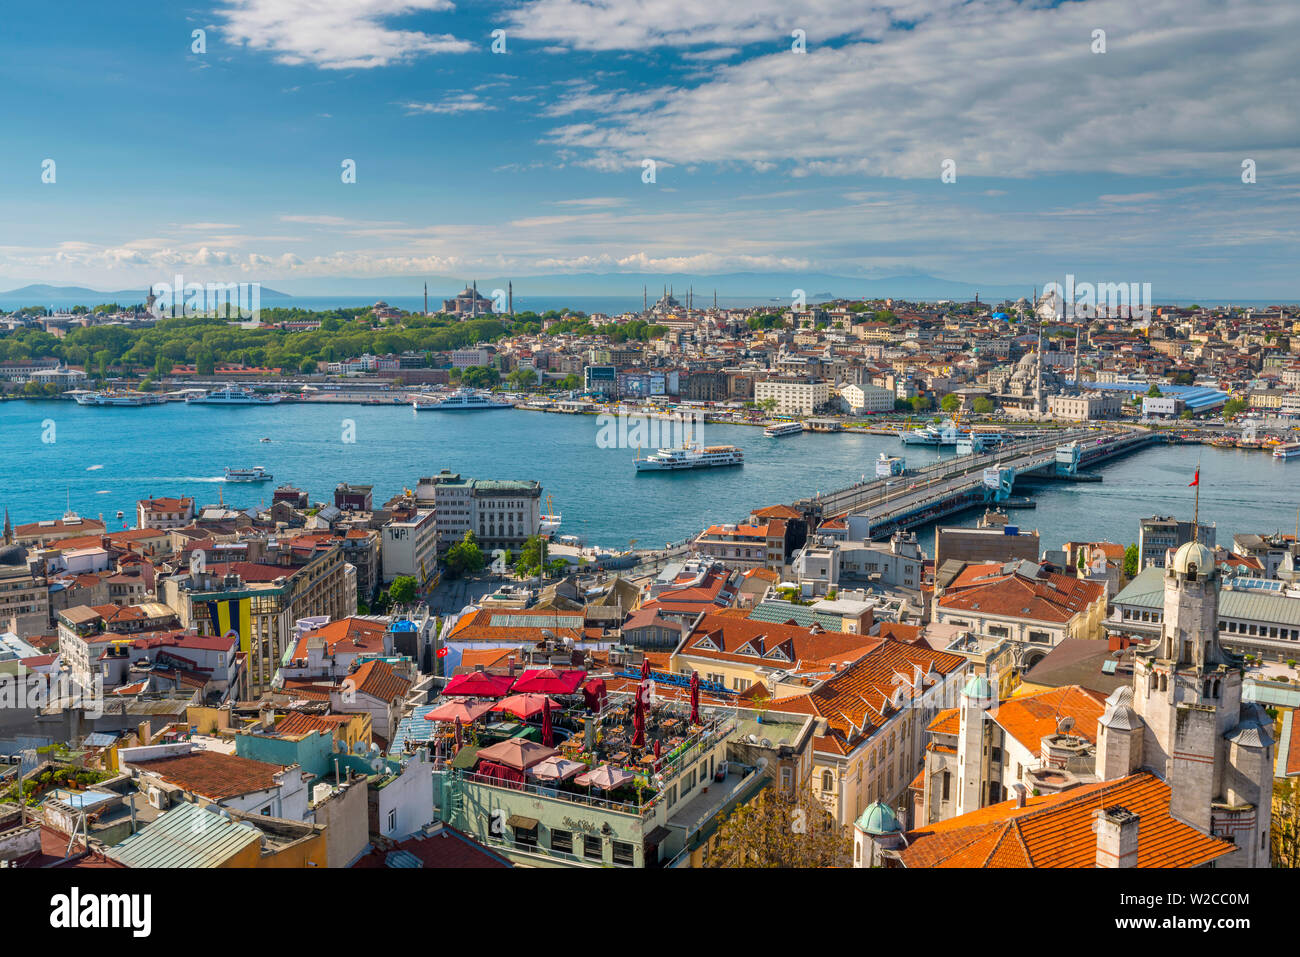 Turkey, Istanbul, Beyoglu, View across Golden Horn to Sultanahmet - Stock Image